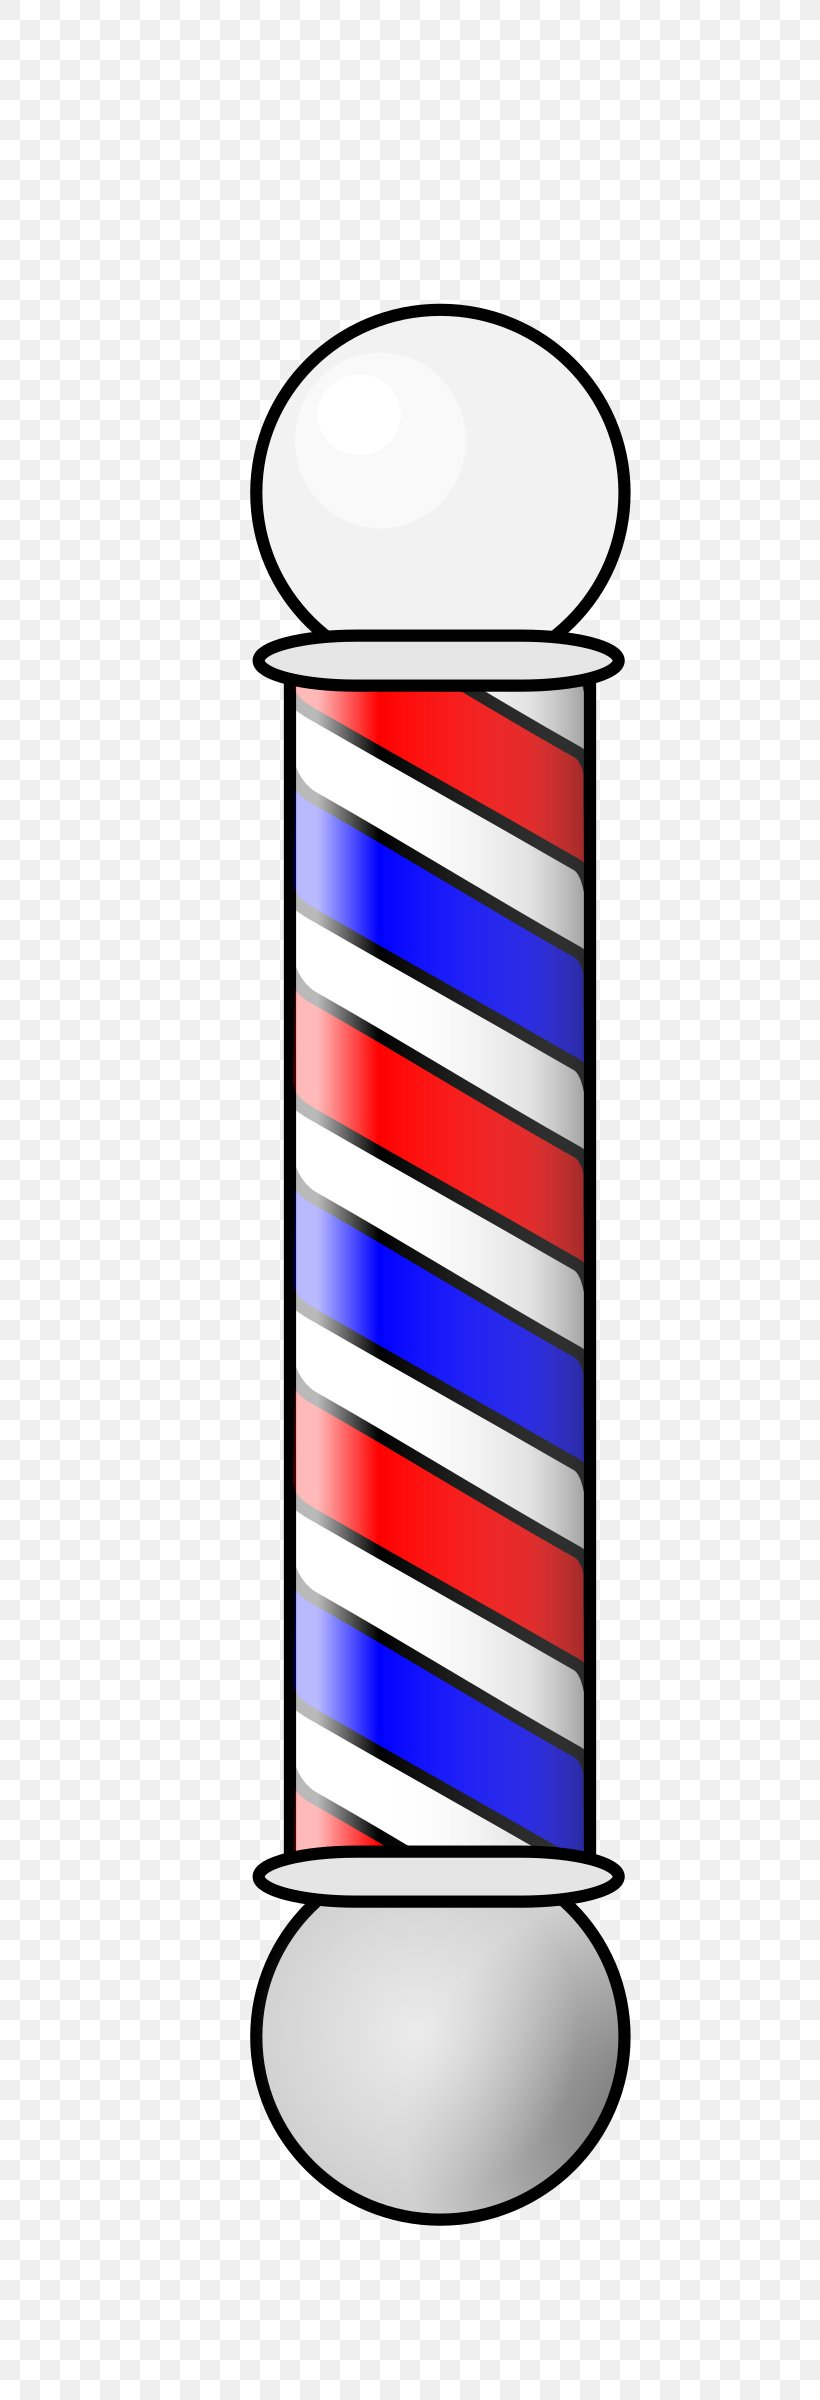 Barber\'s Pole Hair Clipper Hairstyle Clip Art, PNG.